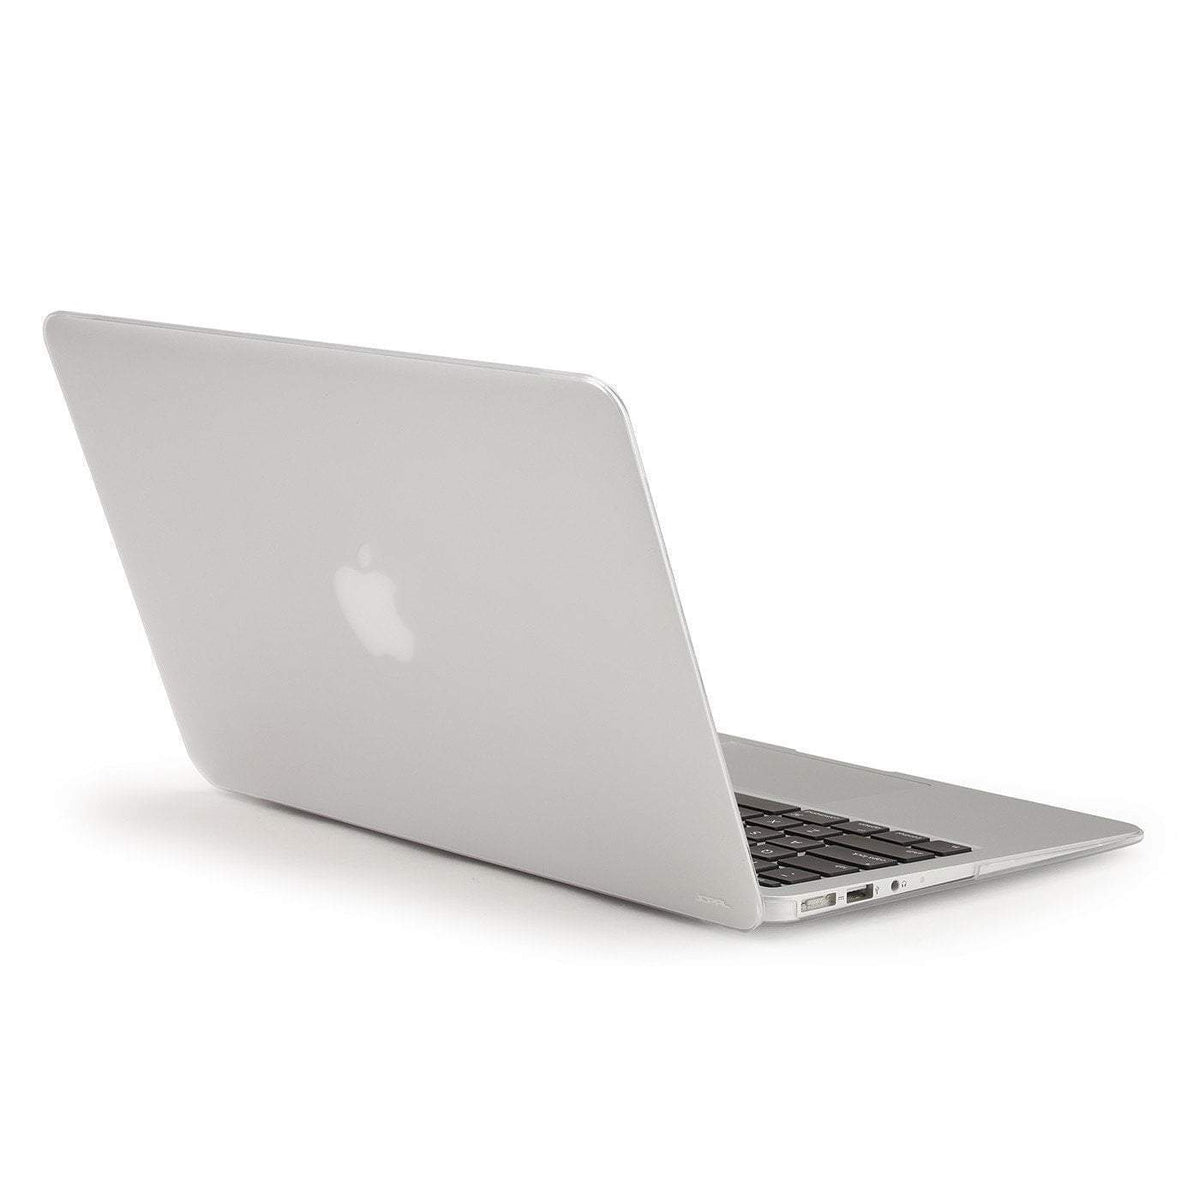 "JCPal Case MacGuard Ultra-thin Protective Case for MacBook Air 11"" MacBook Air 11"" / Crystal"